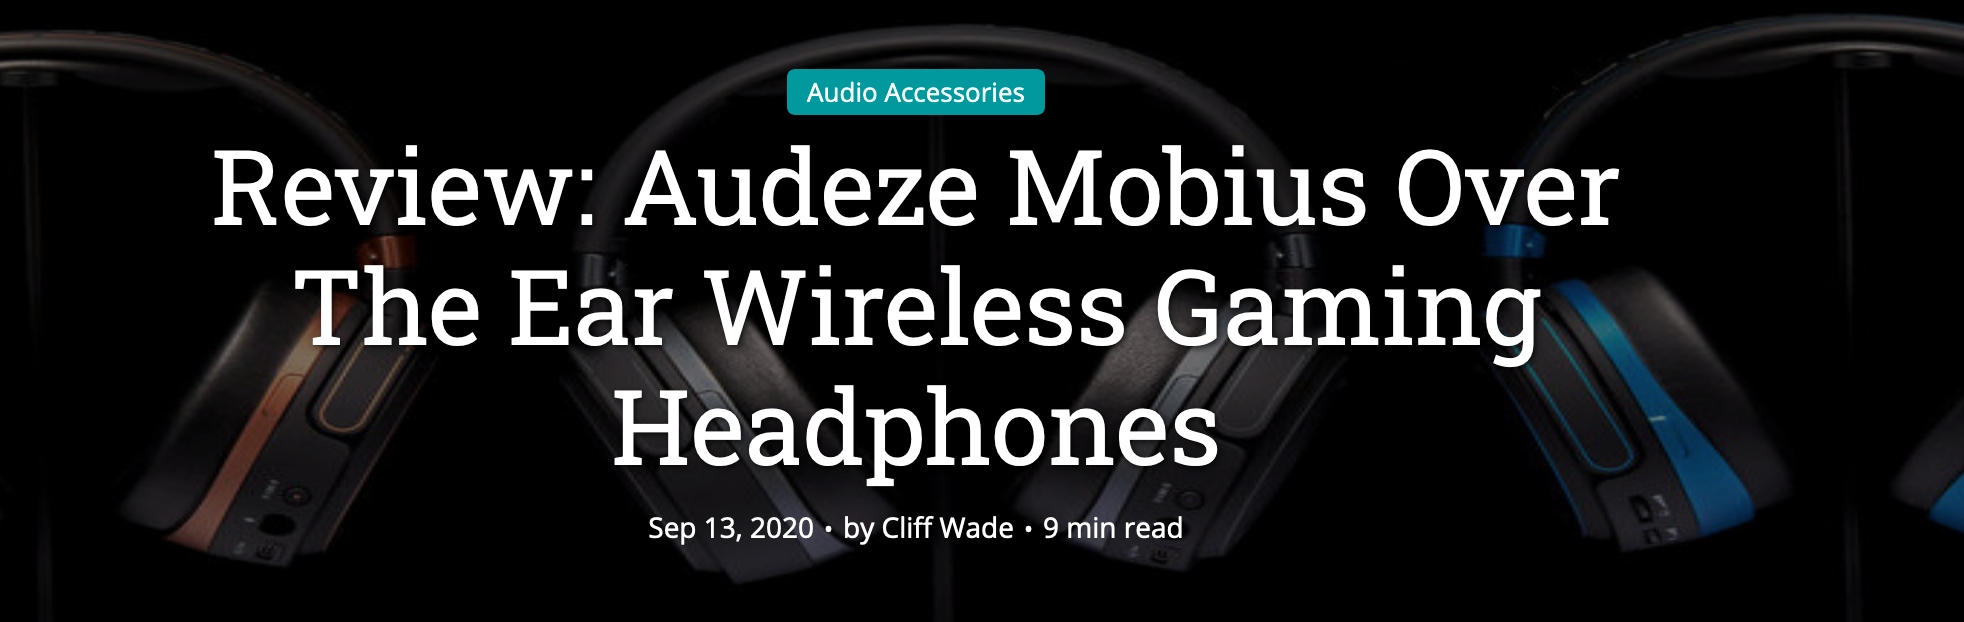 TechDissected Reviews the Audeze Mobius